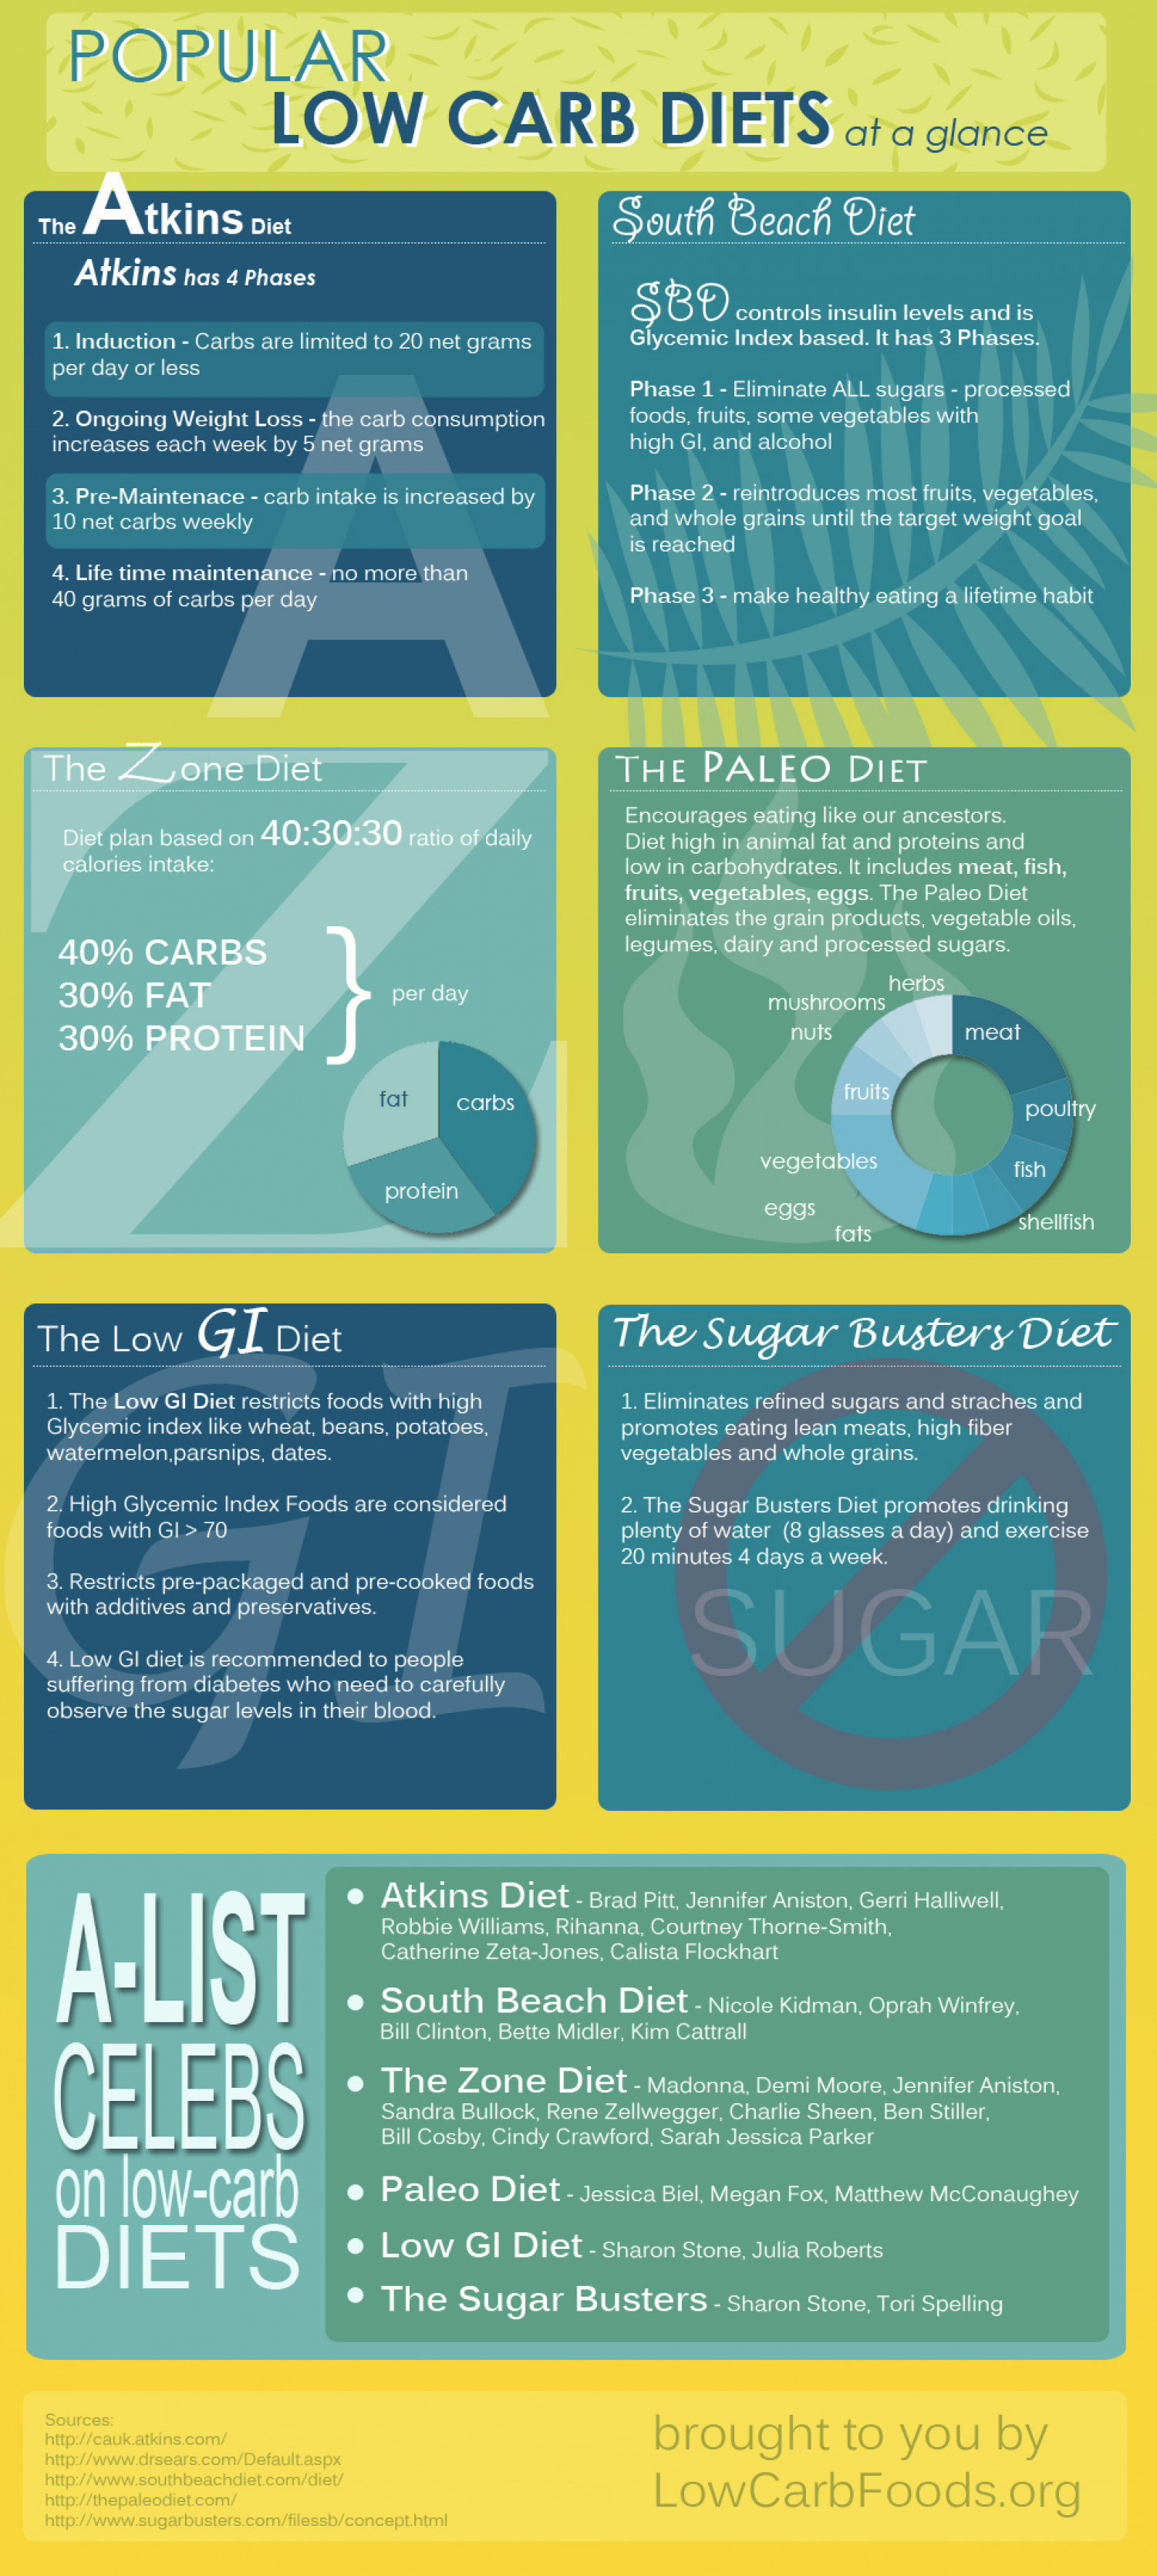 Popular Low-Carb Diets at a Glance Infographic